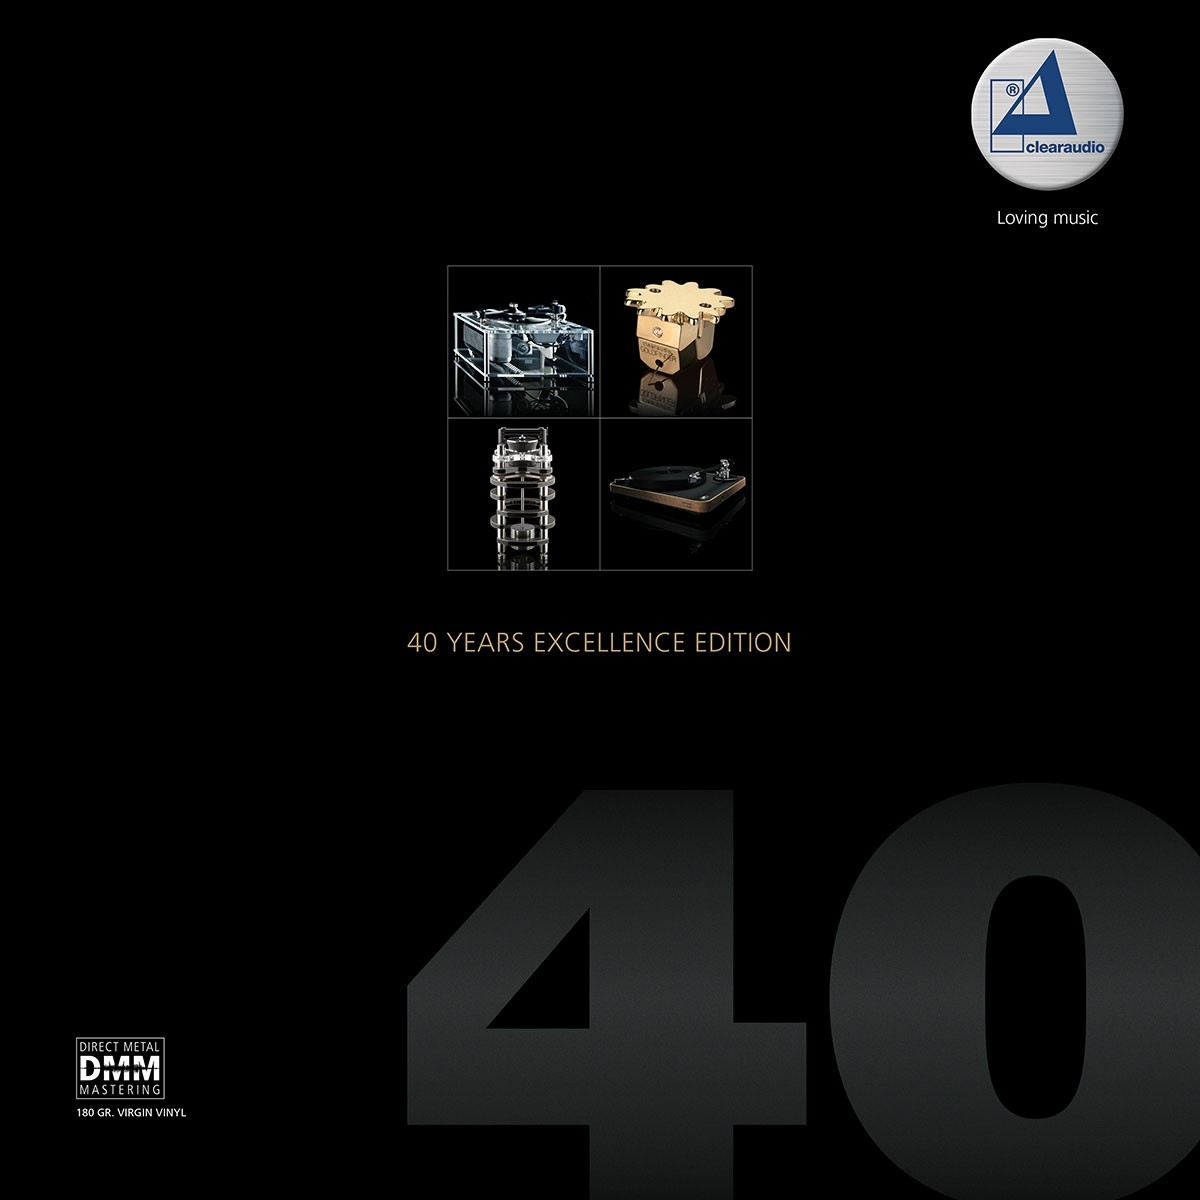 Clearaudio - 40 Years Excellence